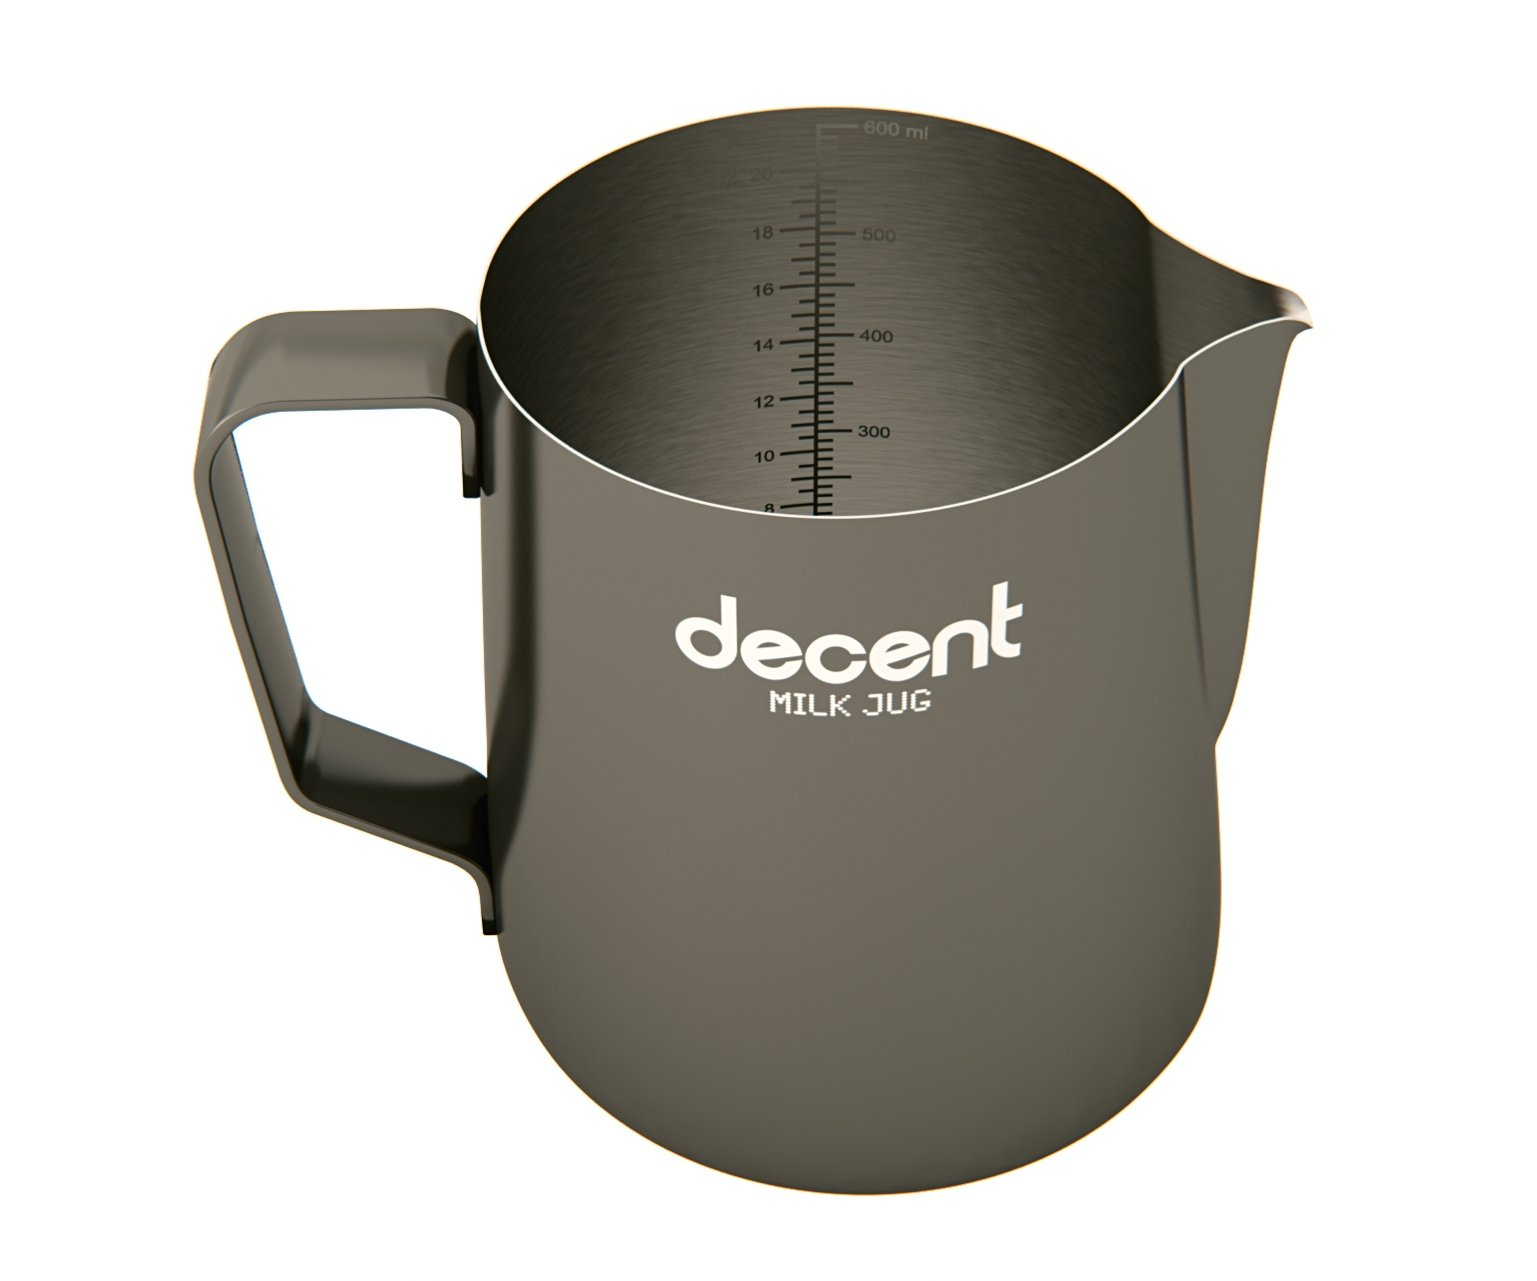 Milk Jug with classic spout (600ml) by Decent Espresso